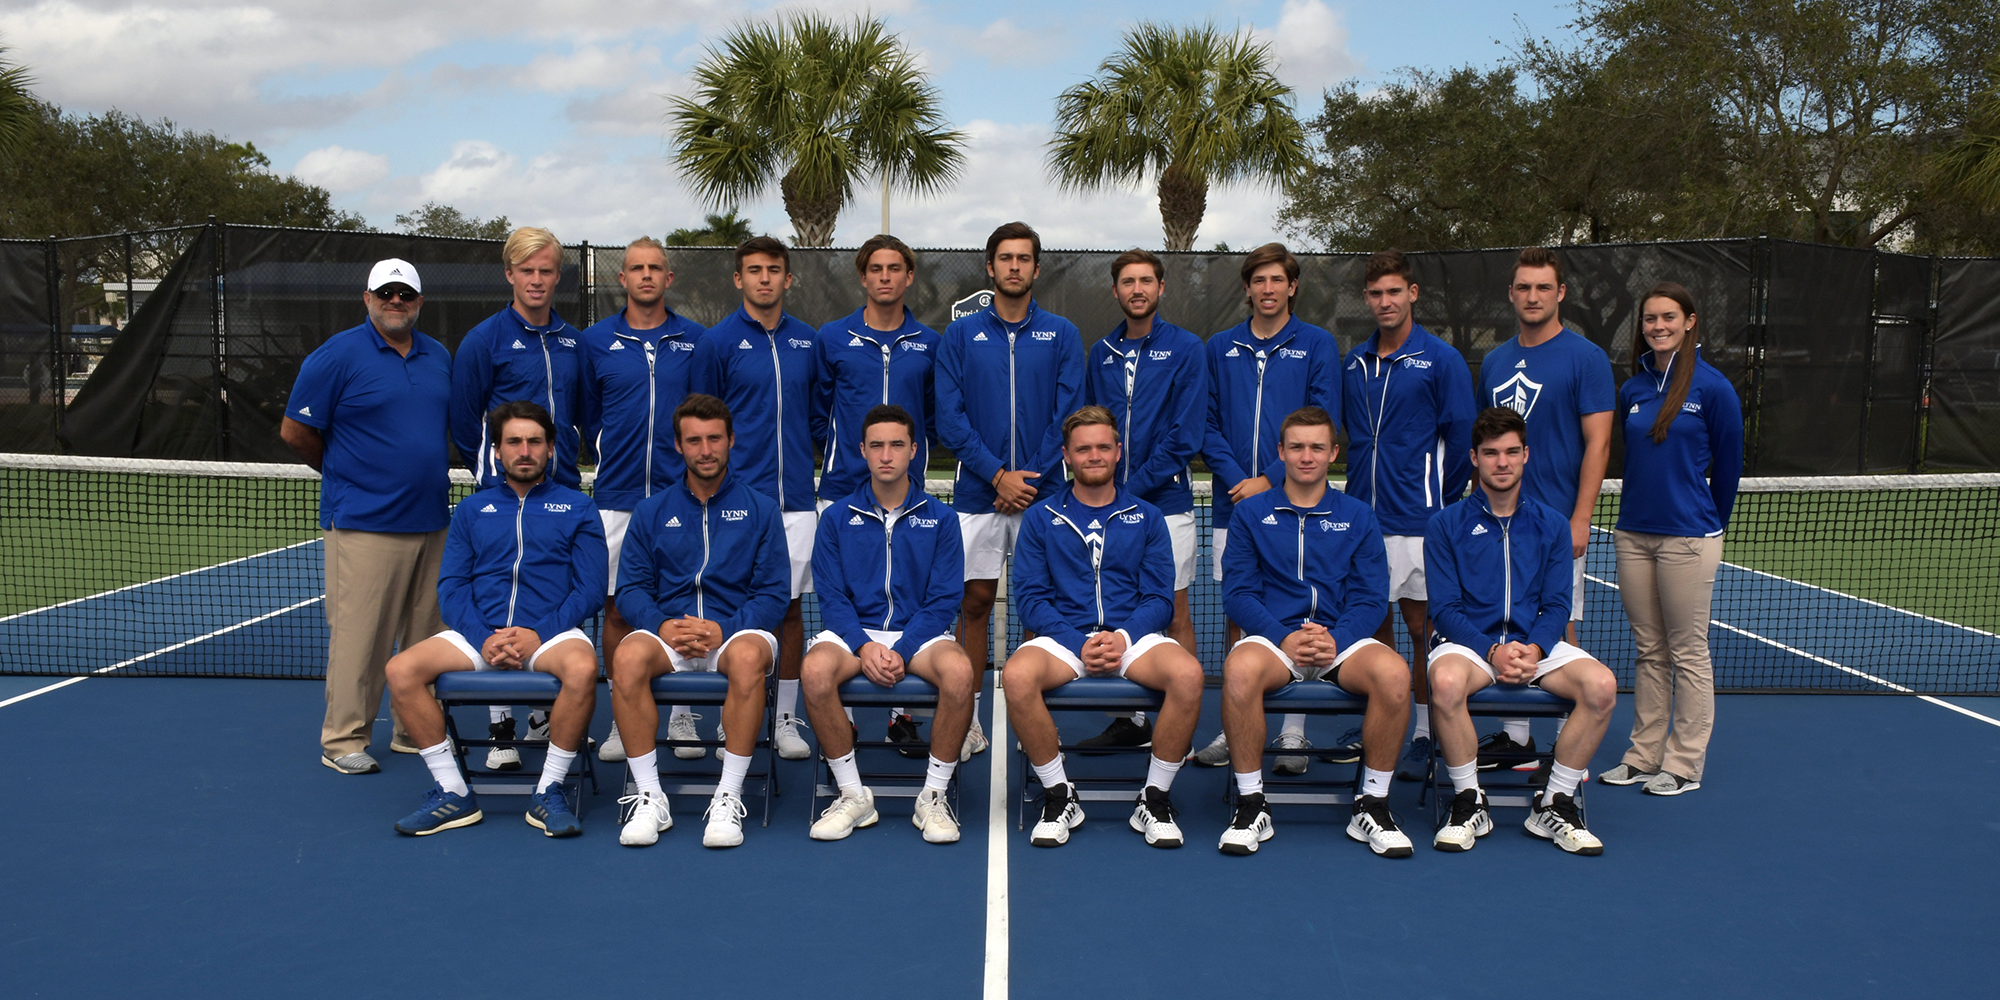 SEASON PREVIEW: 2019 #LynnMTennis